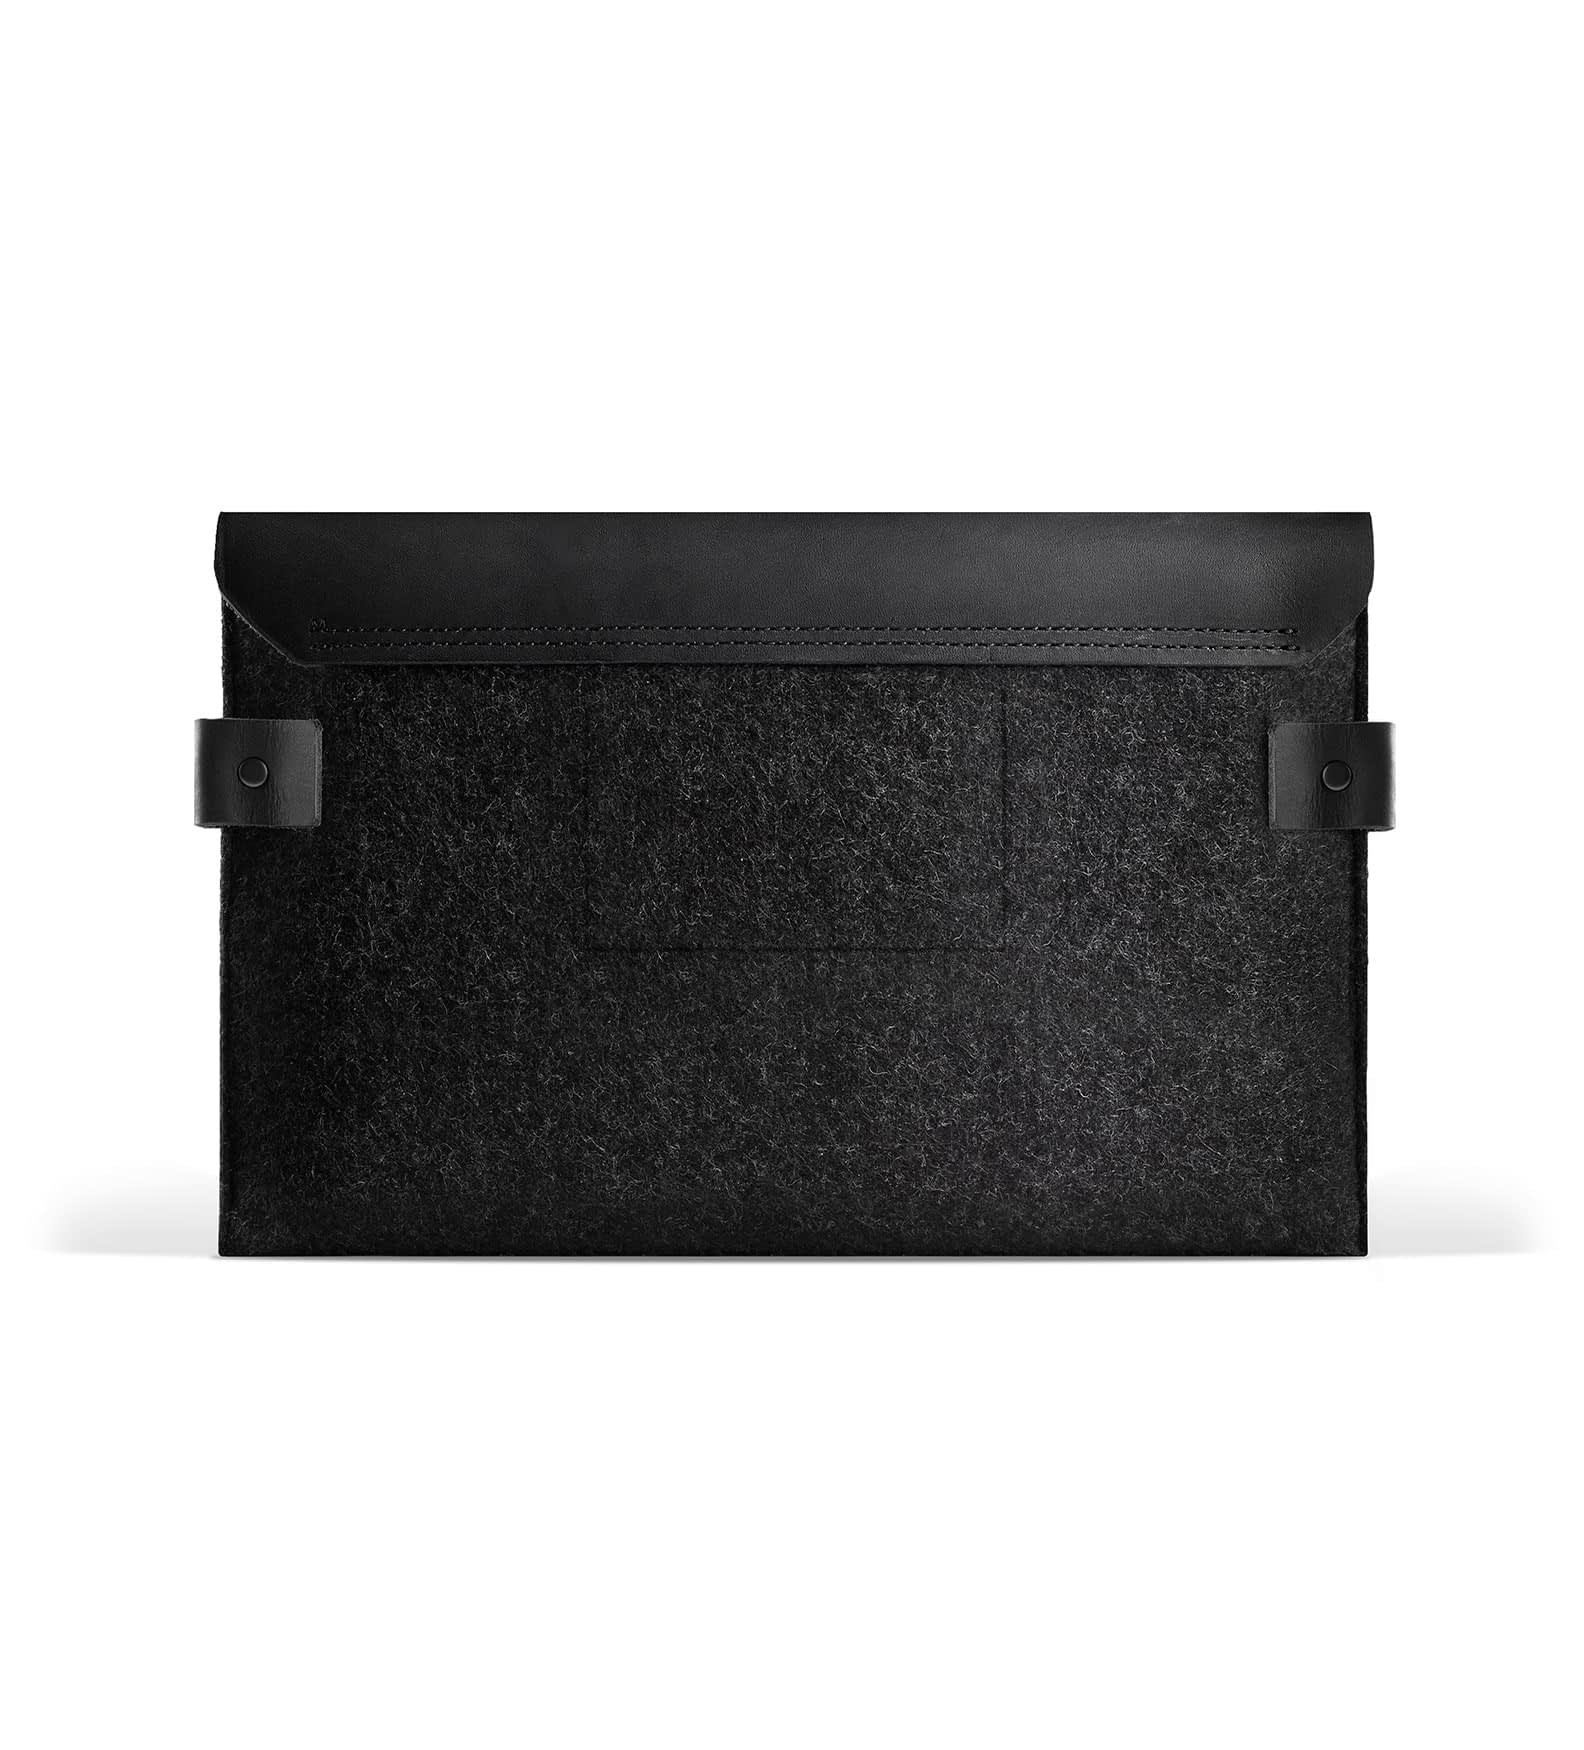 ipad mini envelope sleeve   black   studio   002